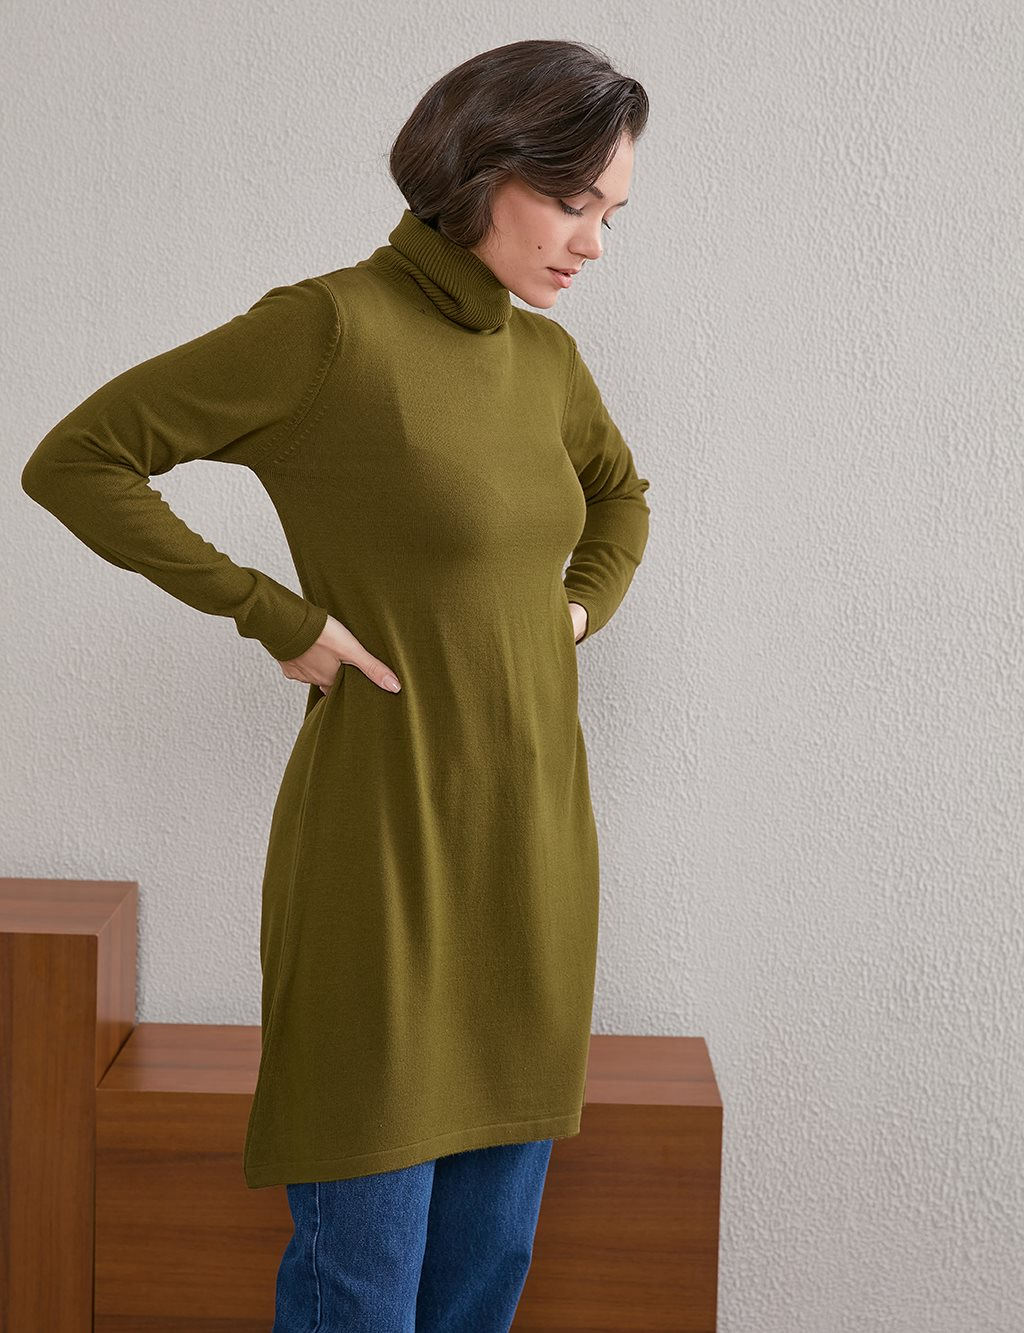 Basic Turtleneck Knitwear Tunic SZ TRK40 Khaki